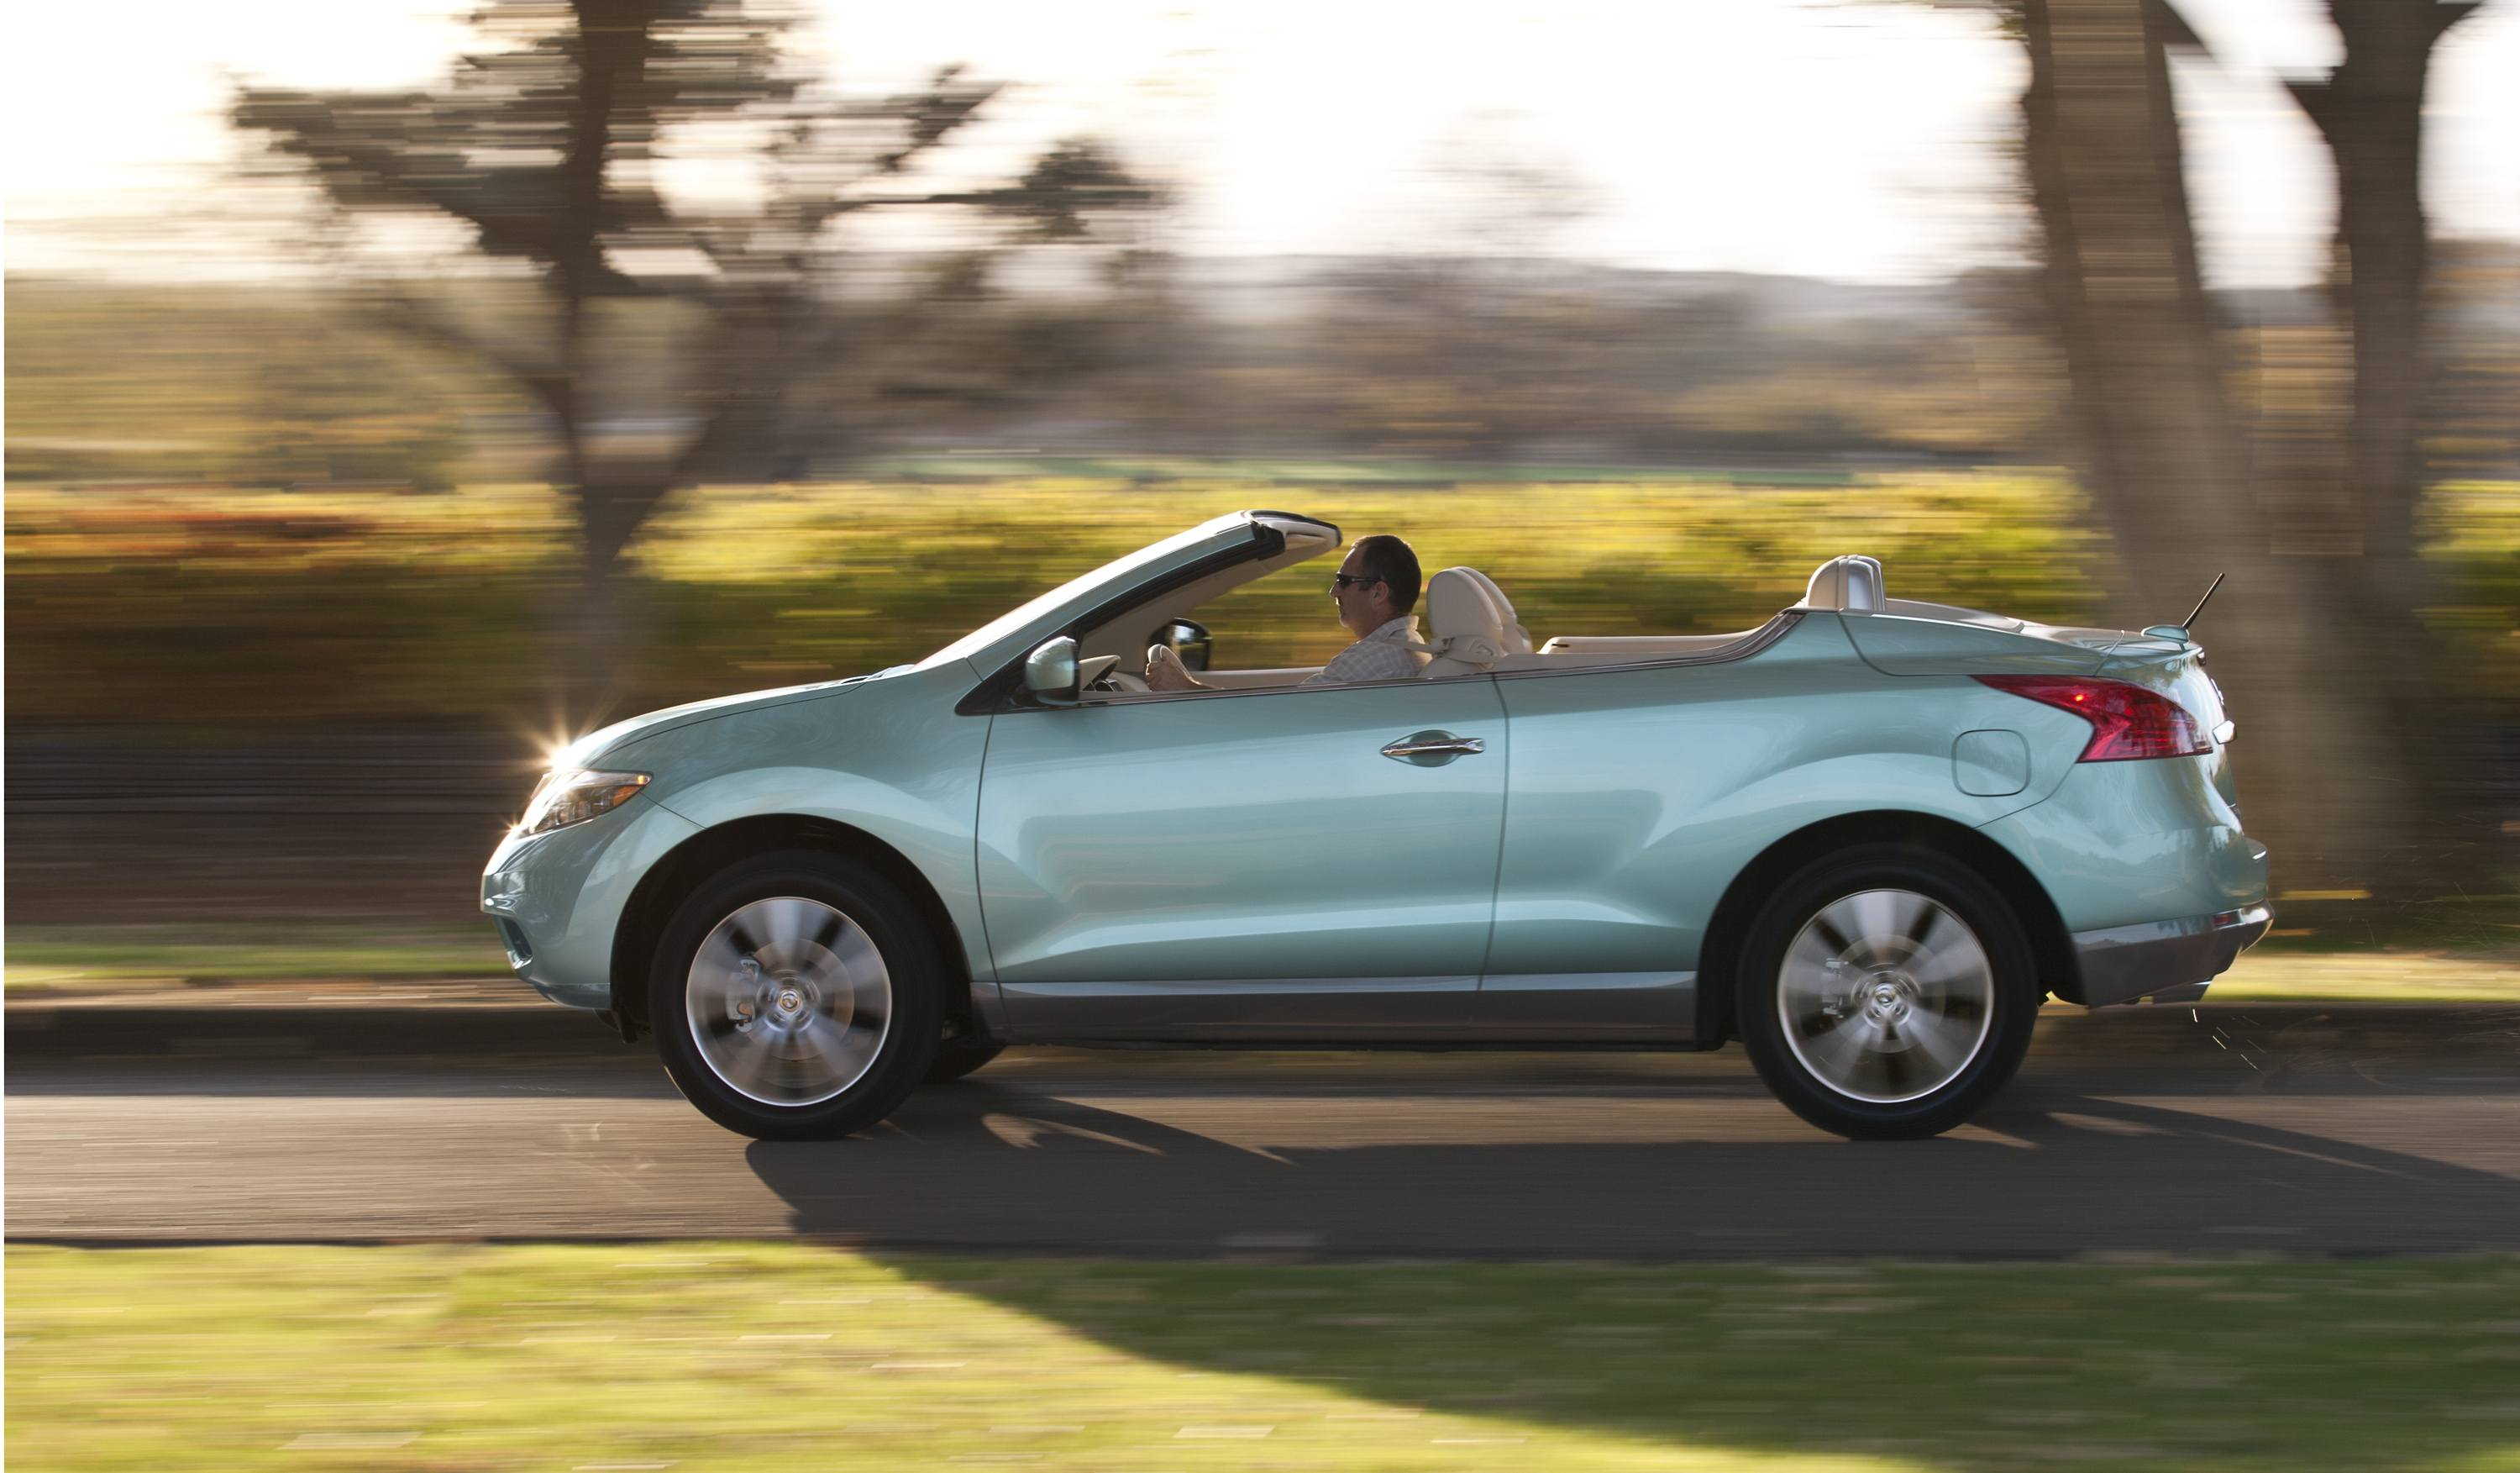 The confounding Nissan Murano CrossCabriolet